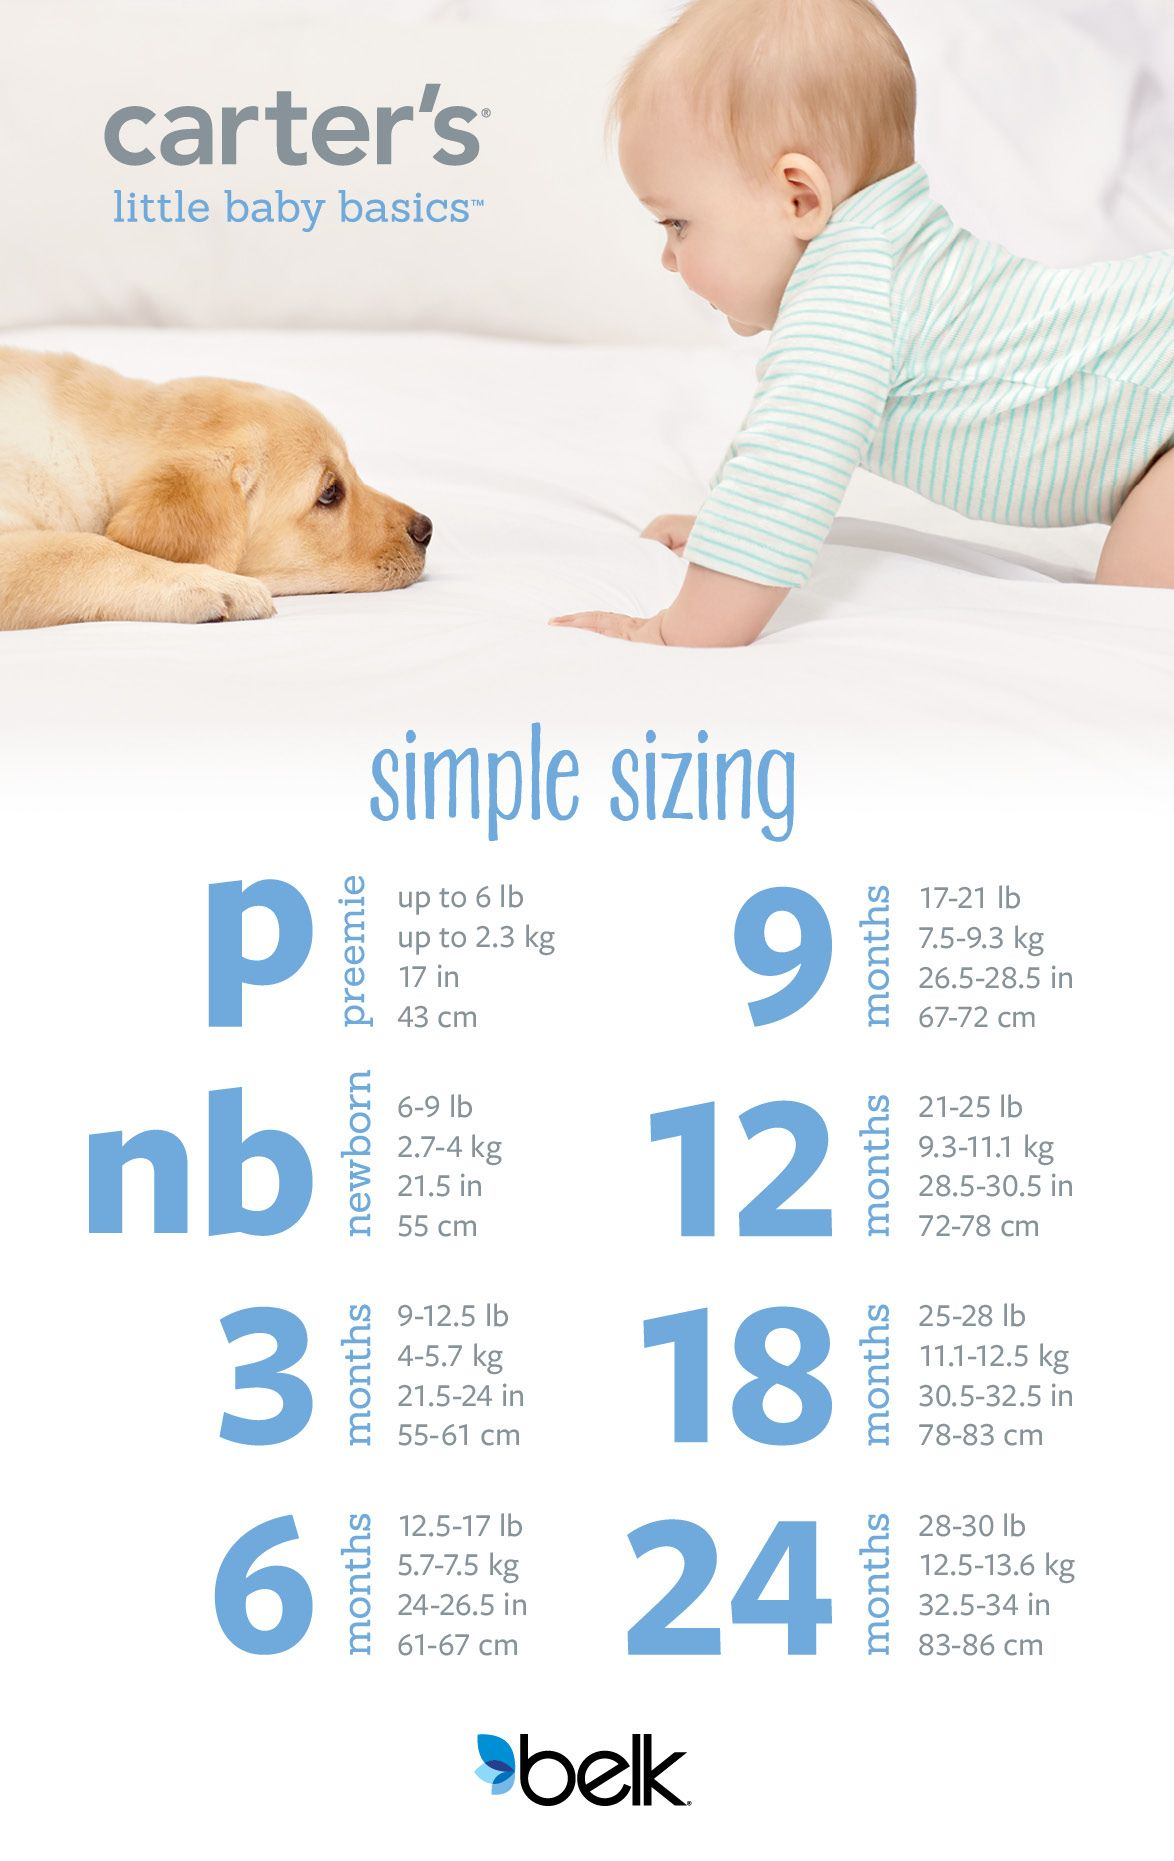 Your guide to simple sizing for your little one an easy look at its hard to know what size to buy baby we hope this simple guide helps our preemie size now fits up to 6 lbs and when in doubt just buy a size geenschuldenfo Image collections